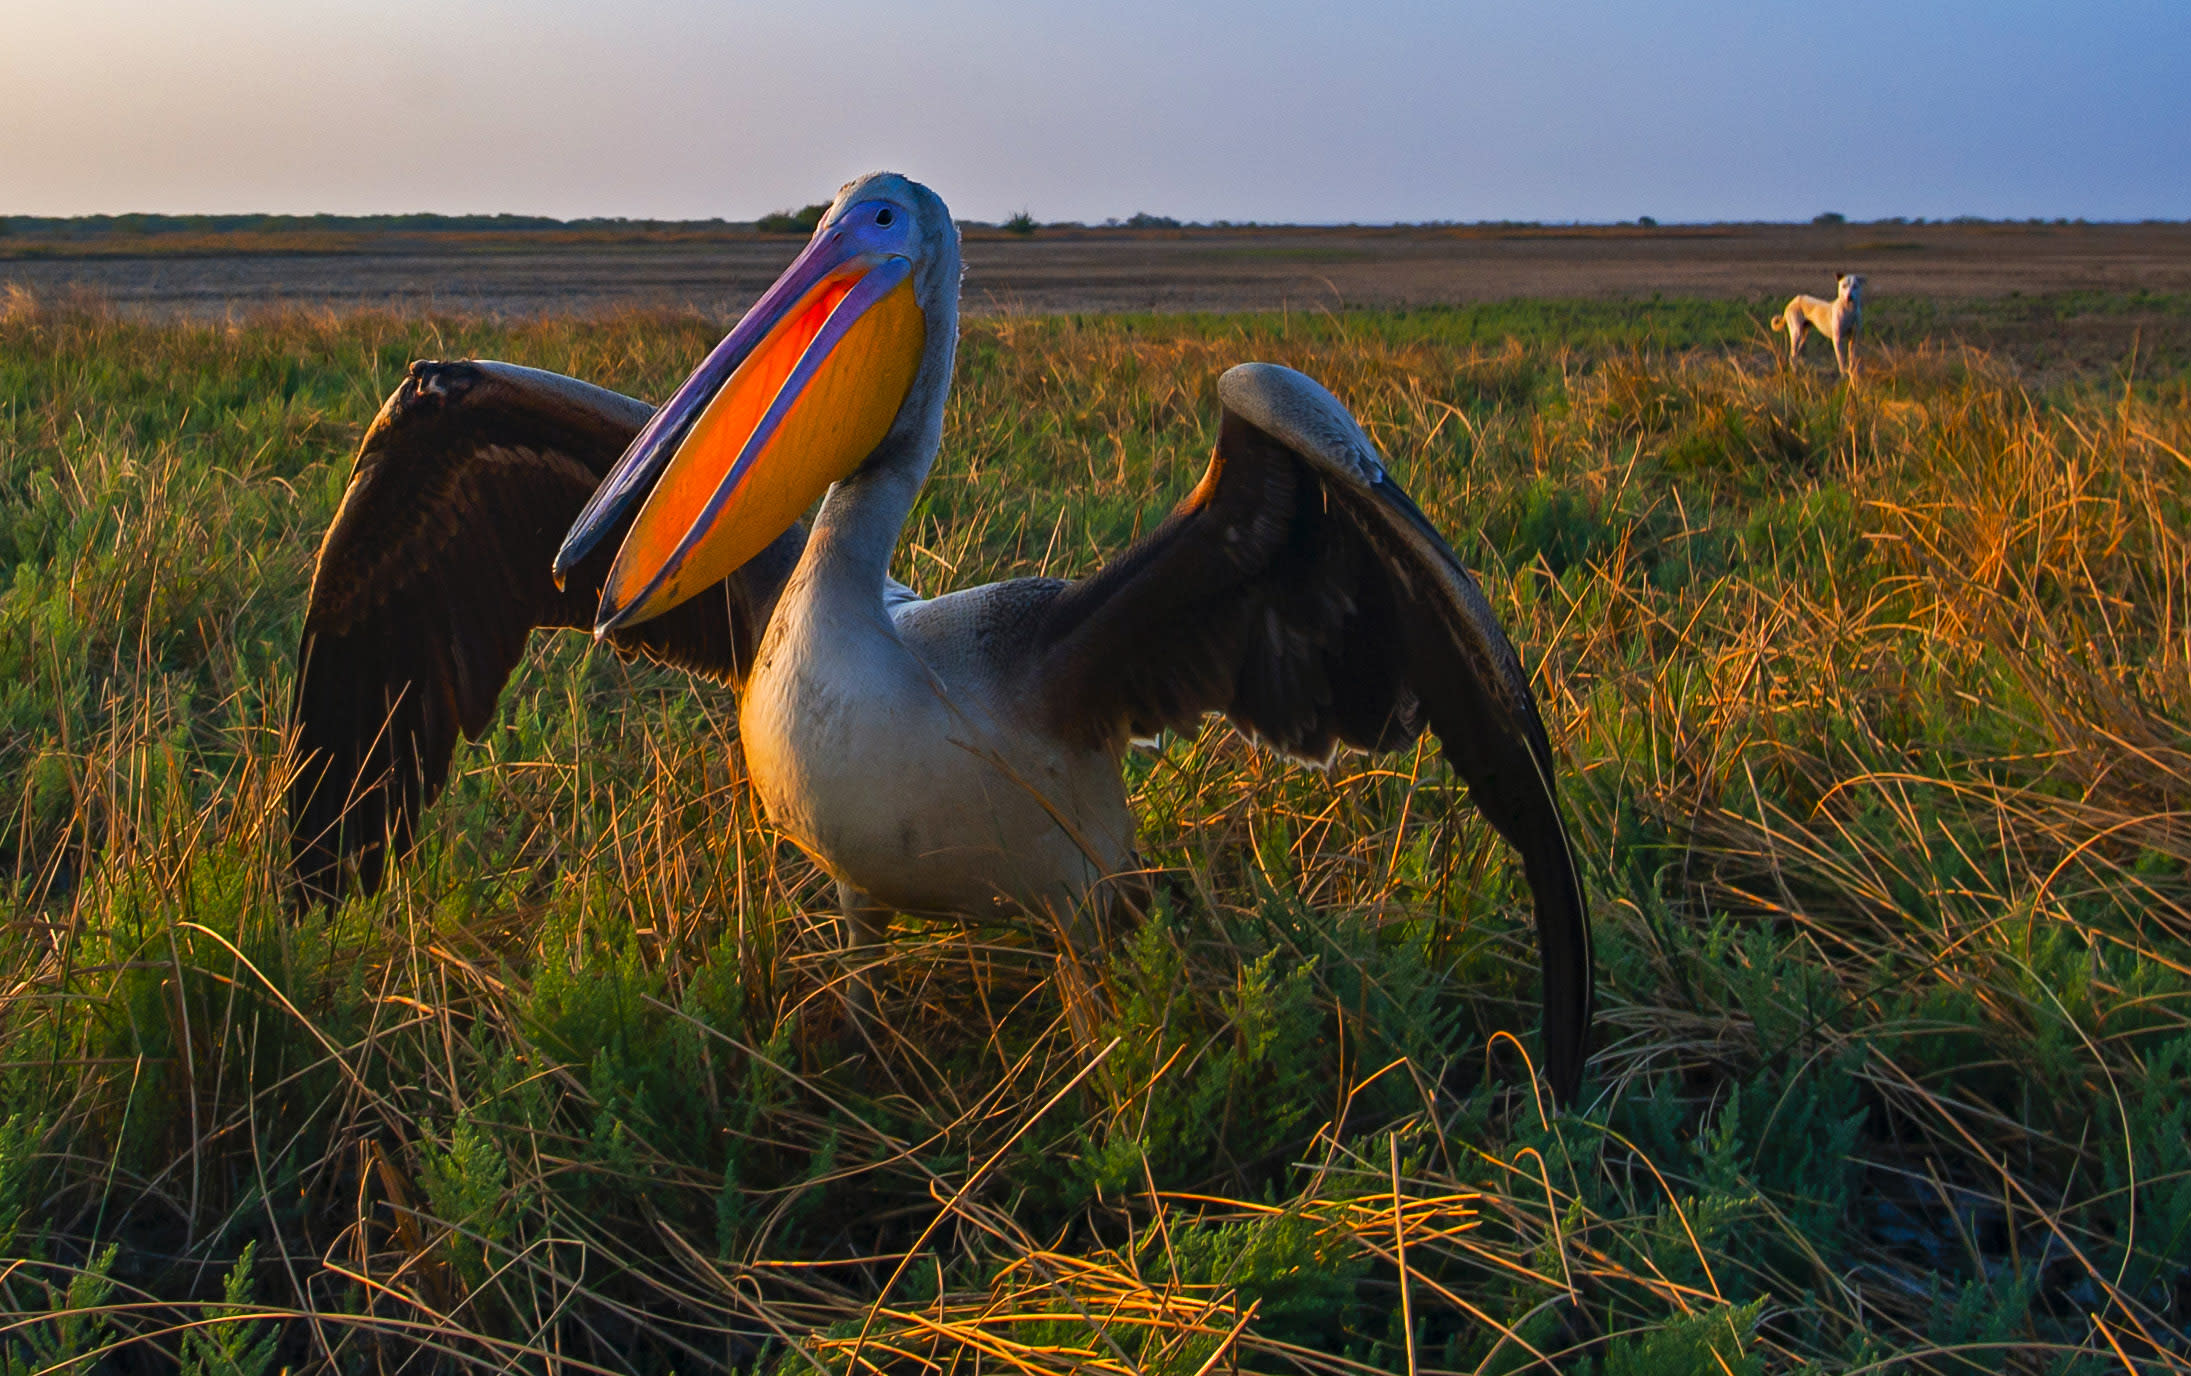 Free-ranging dogs are an emerging threat to pelicans and other waterbirds in the Little Rann of Kutch, Gujarat. They are known to hunt pelicans and destroy their nests. Photo: Dhritiman Mukherjee